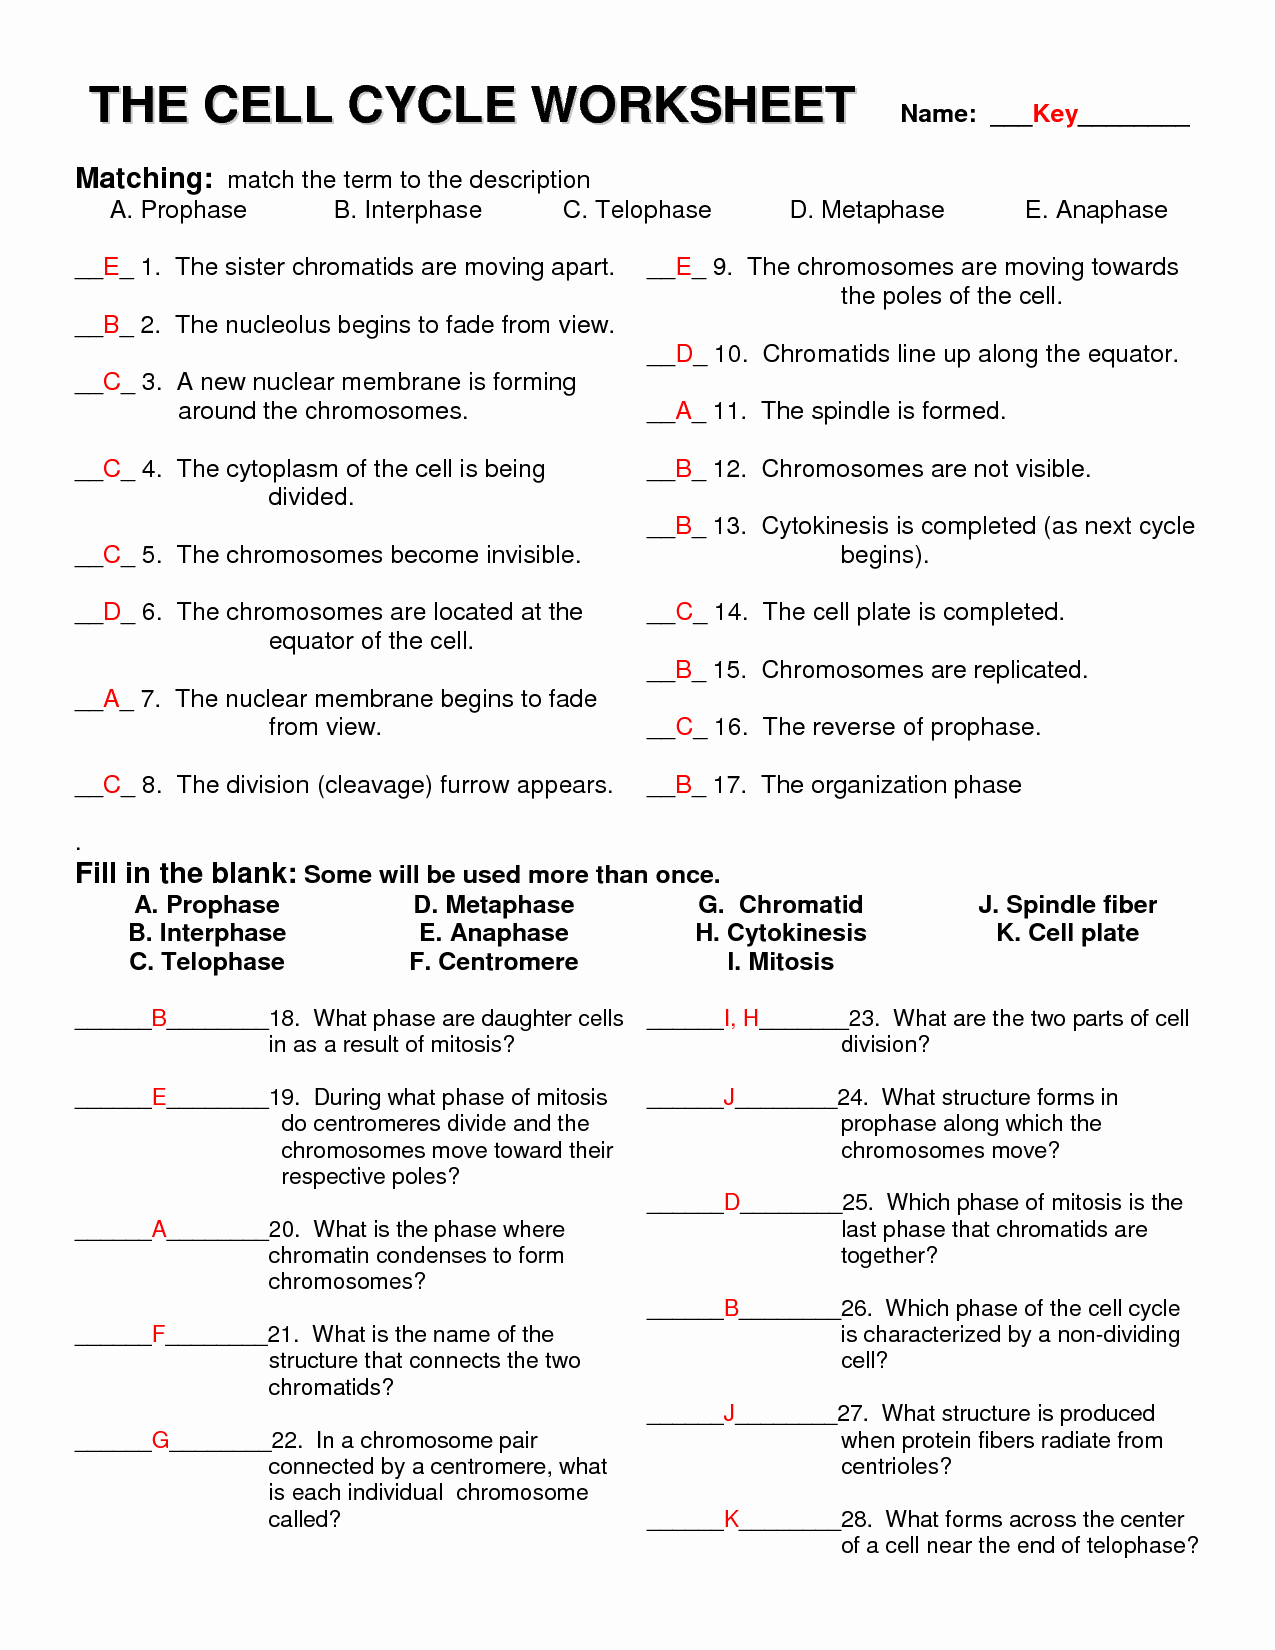 50 Meiosis Matching Worksheet Answer Key